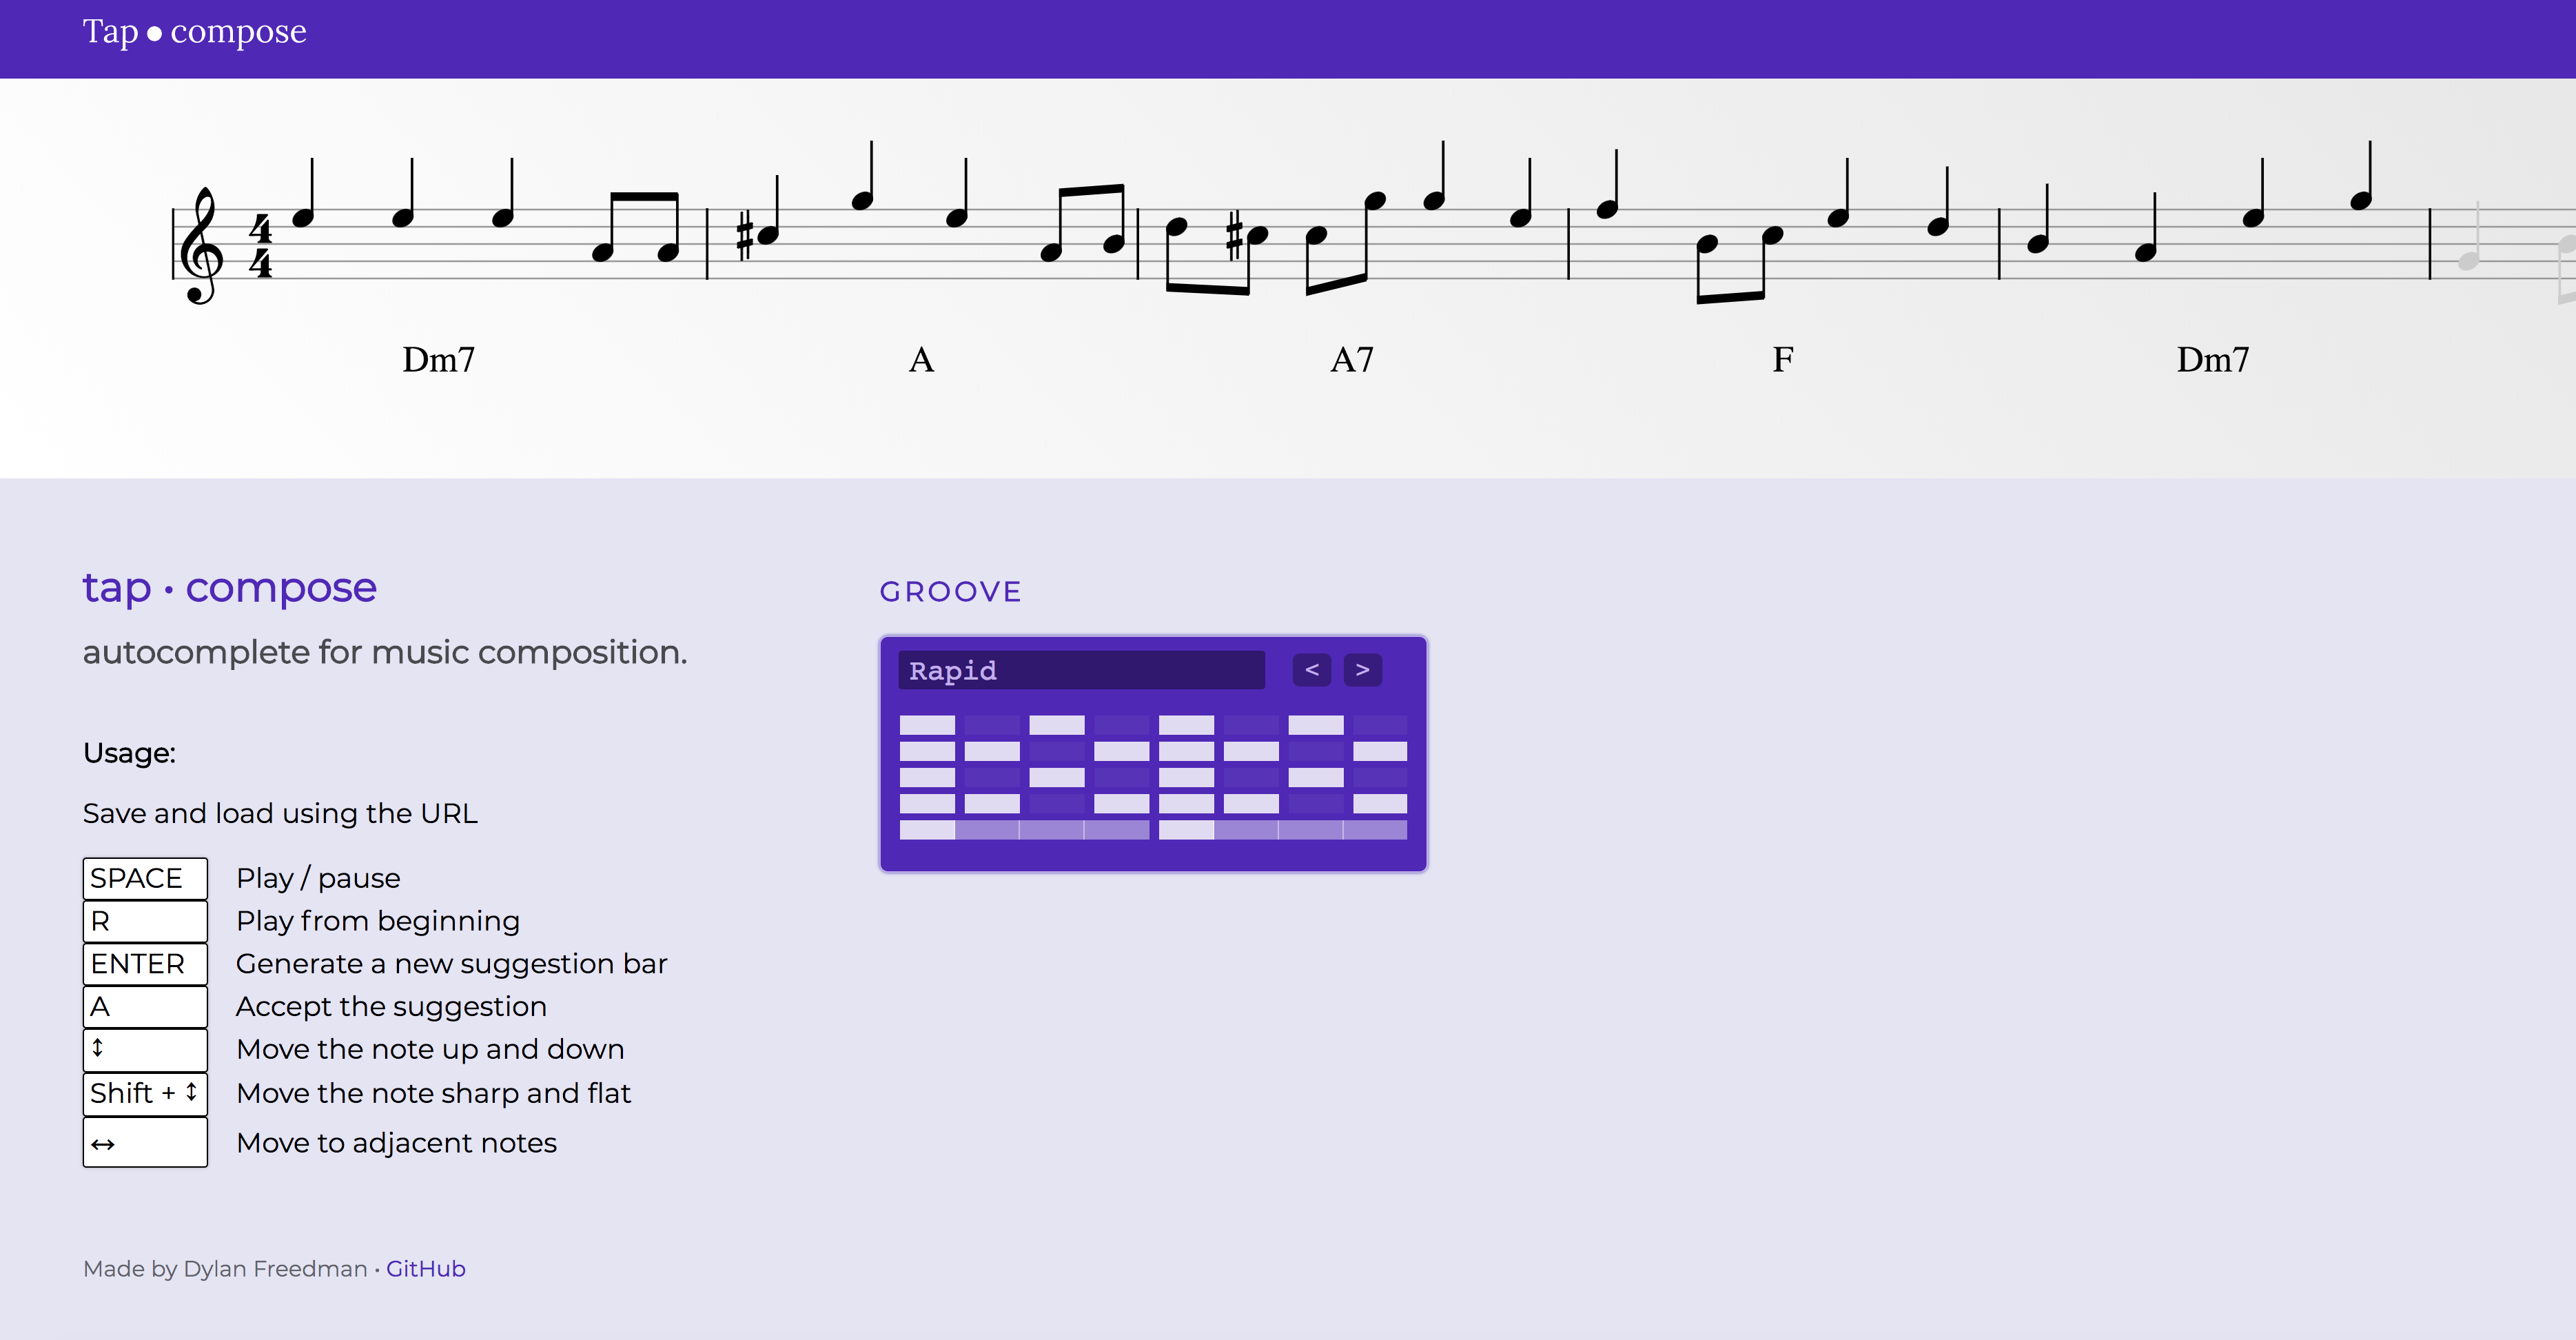 Screenshot of Tapcompose: a musical score at the top and a dialog to change the groove and usage controls at the bottom.